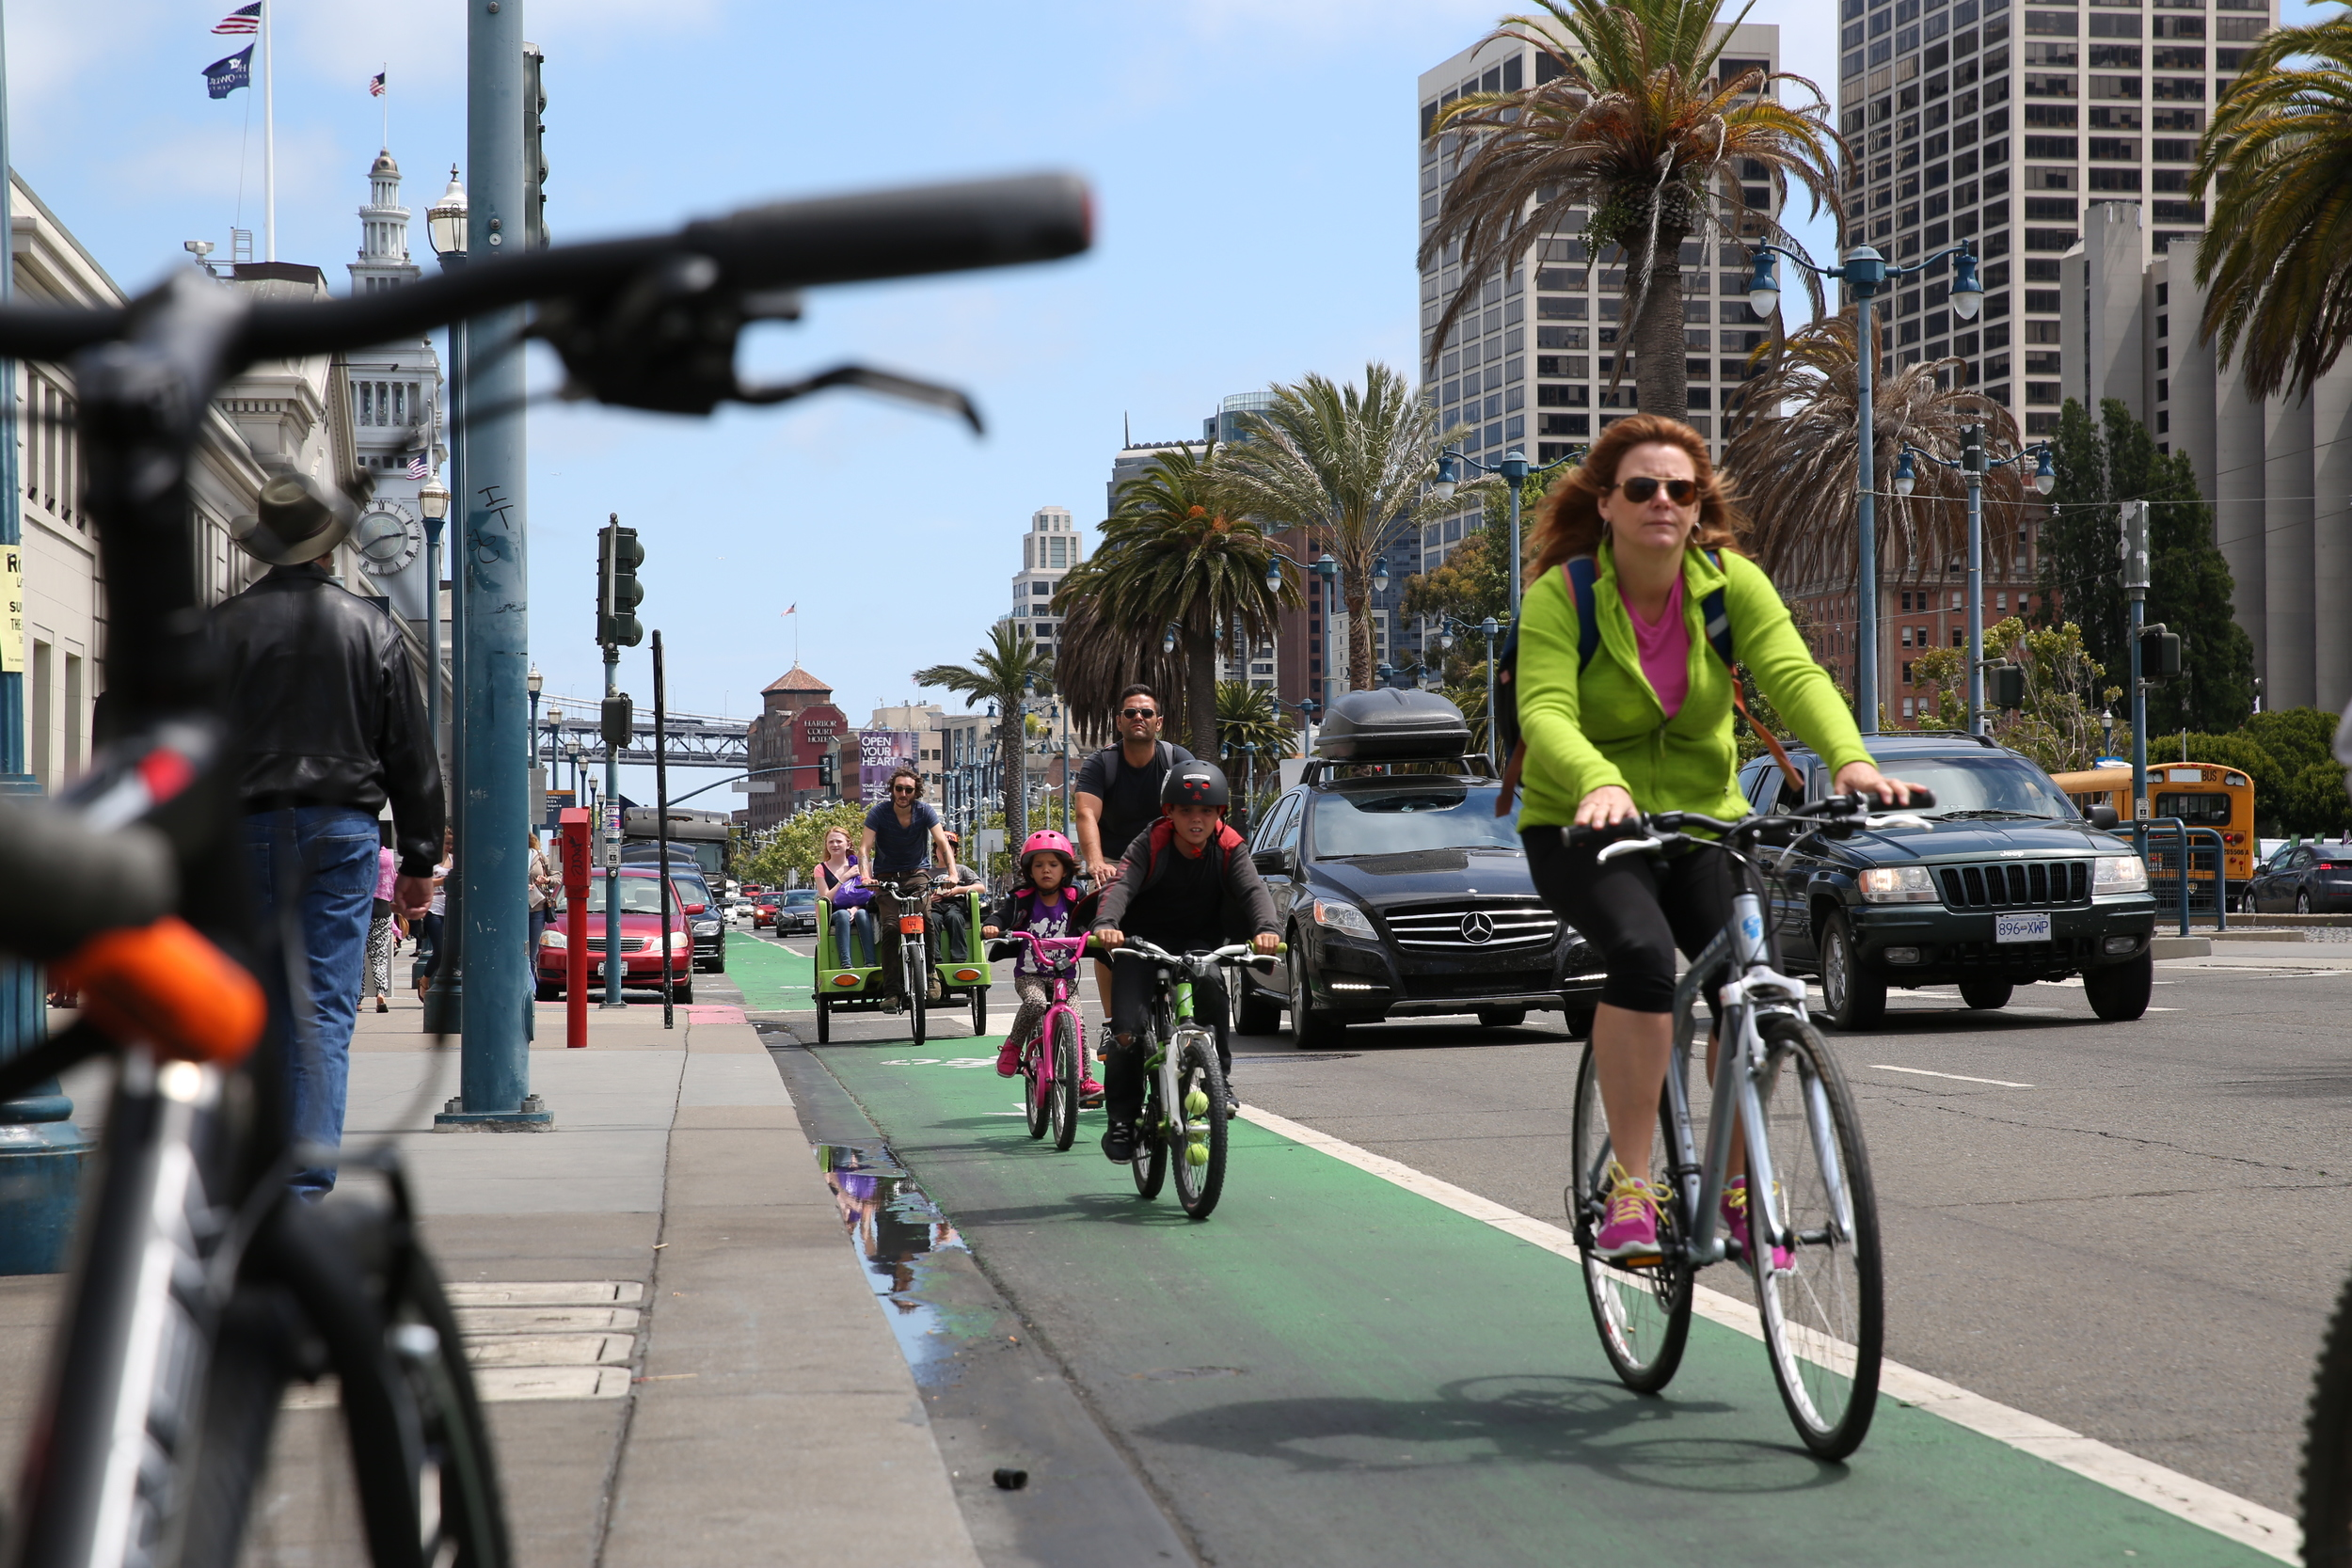 The Blue-Greenway bike route traces the water's edge along the Embarcadero downtown, then out to Fisherman's Wharf and ultimately to Crissy Field Park and over the Golden Gate Bridge.